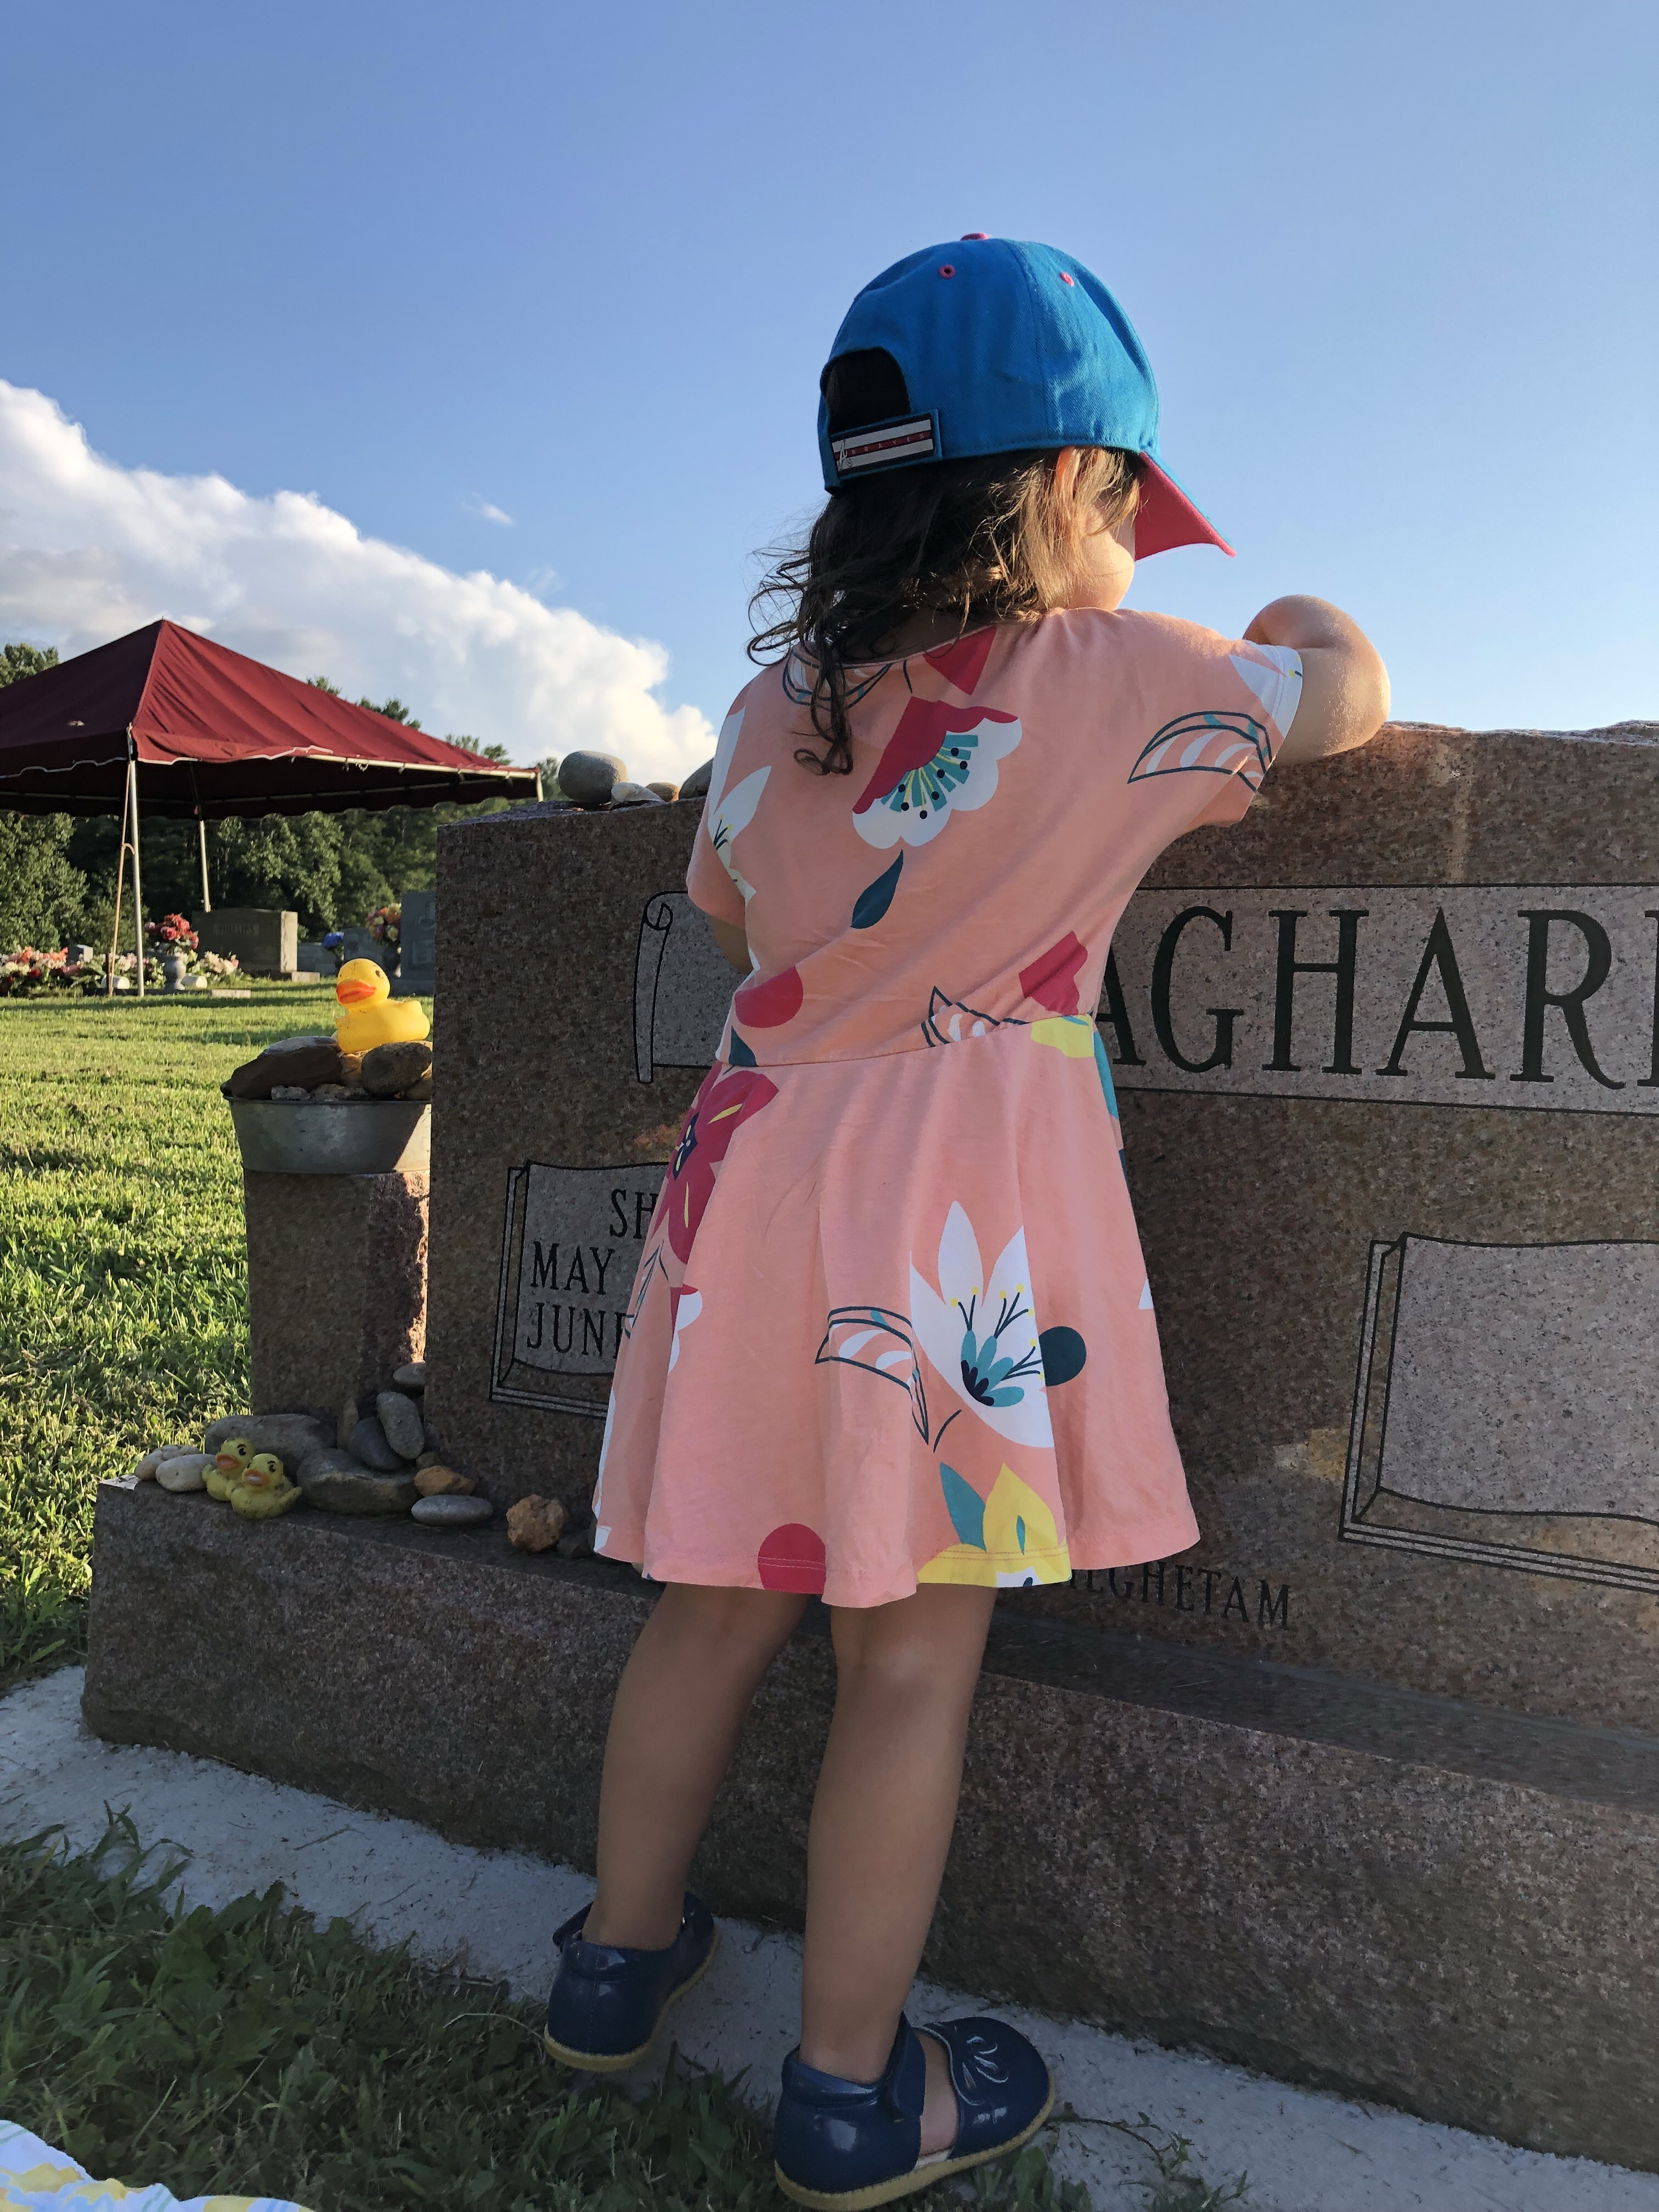 Comprehending Death – Through the Mind of a Child